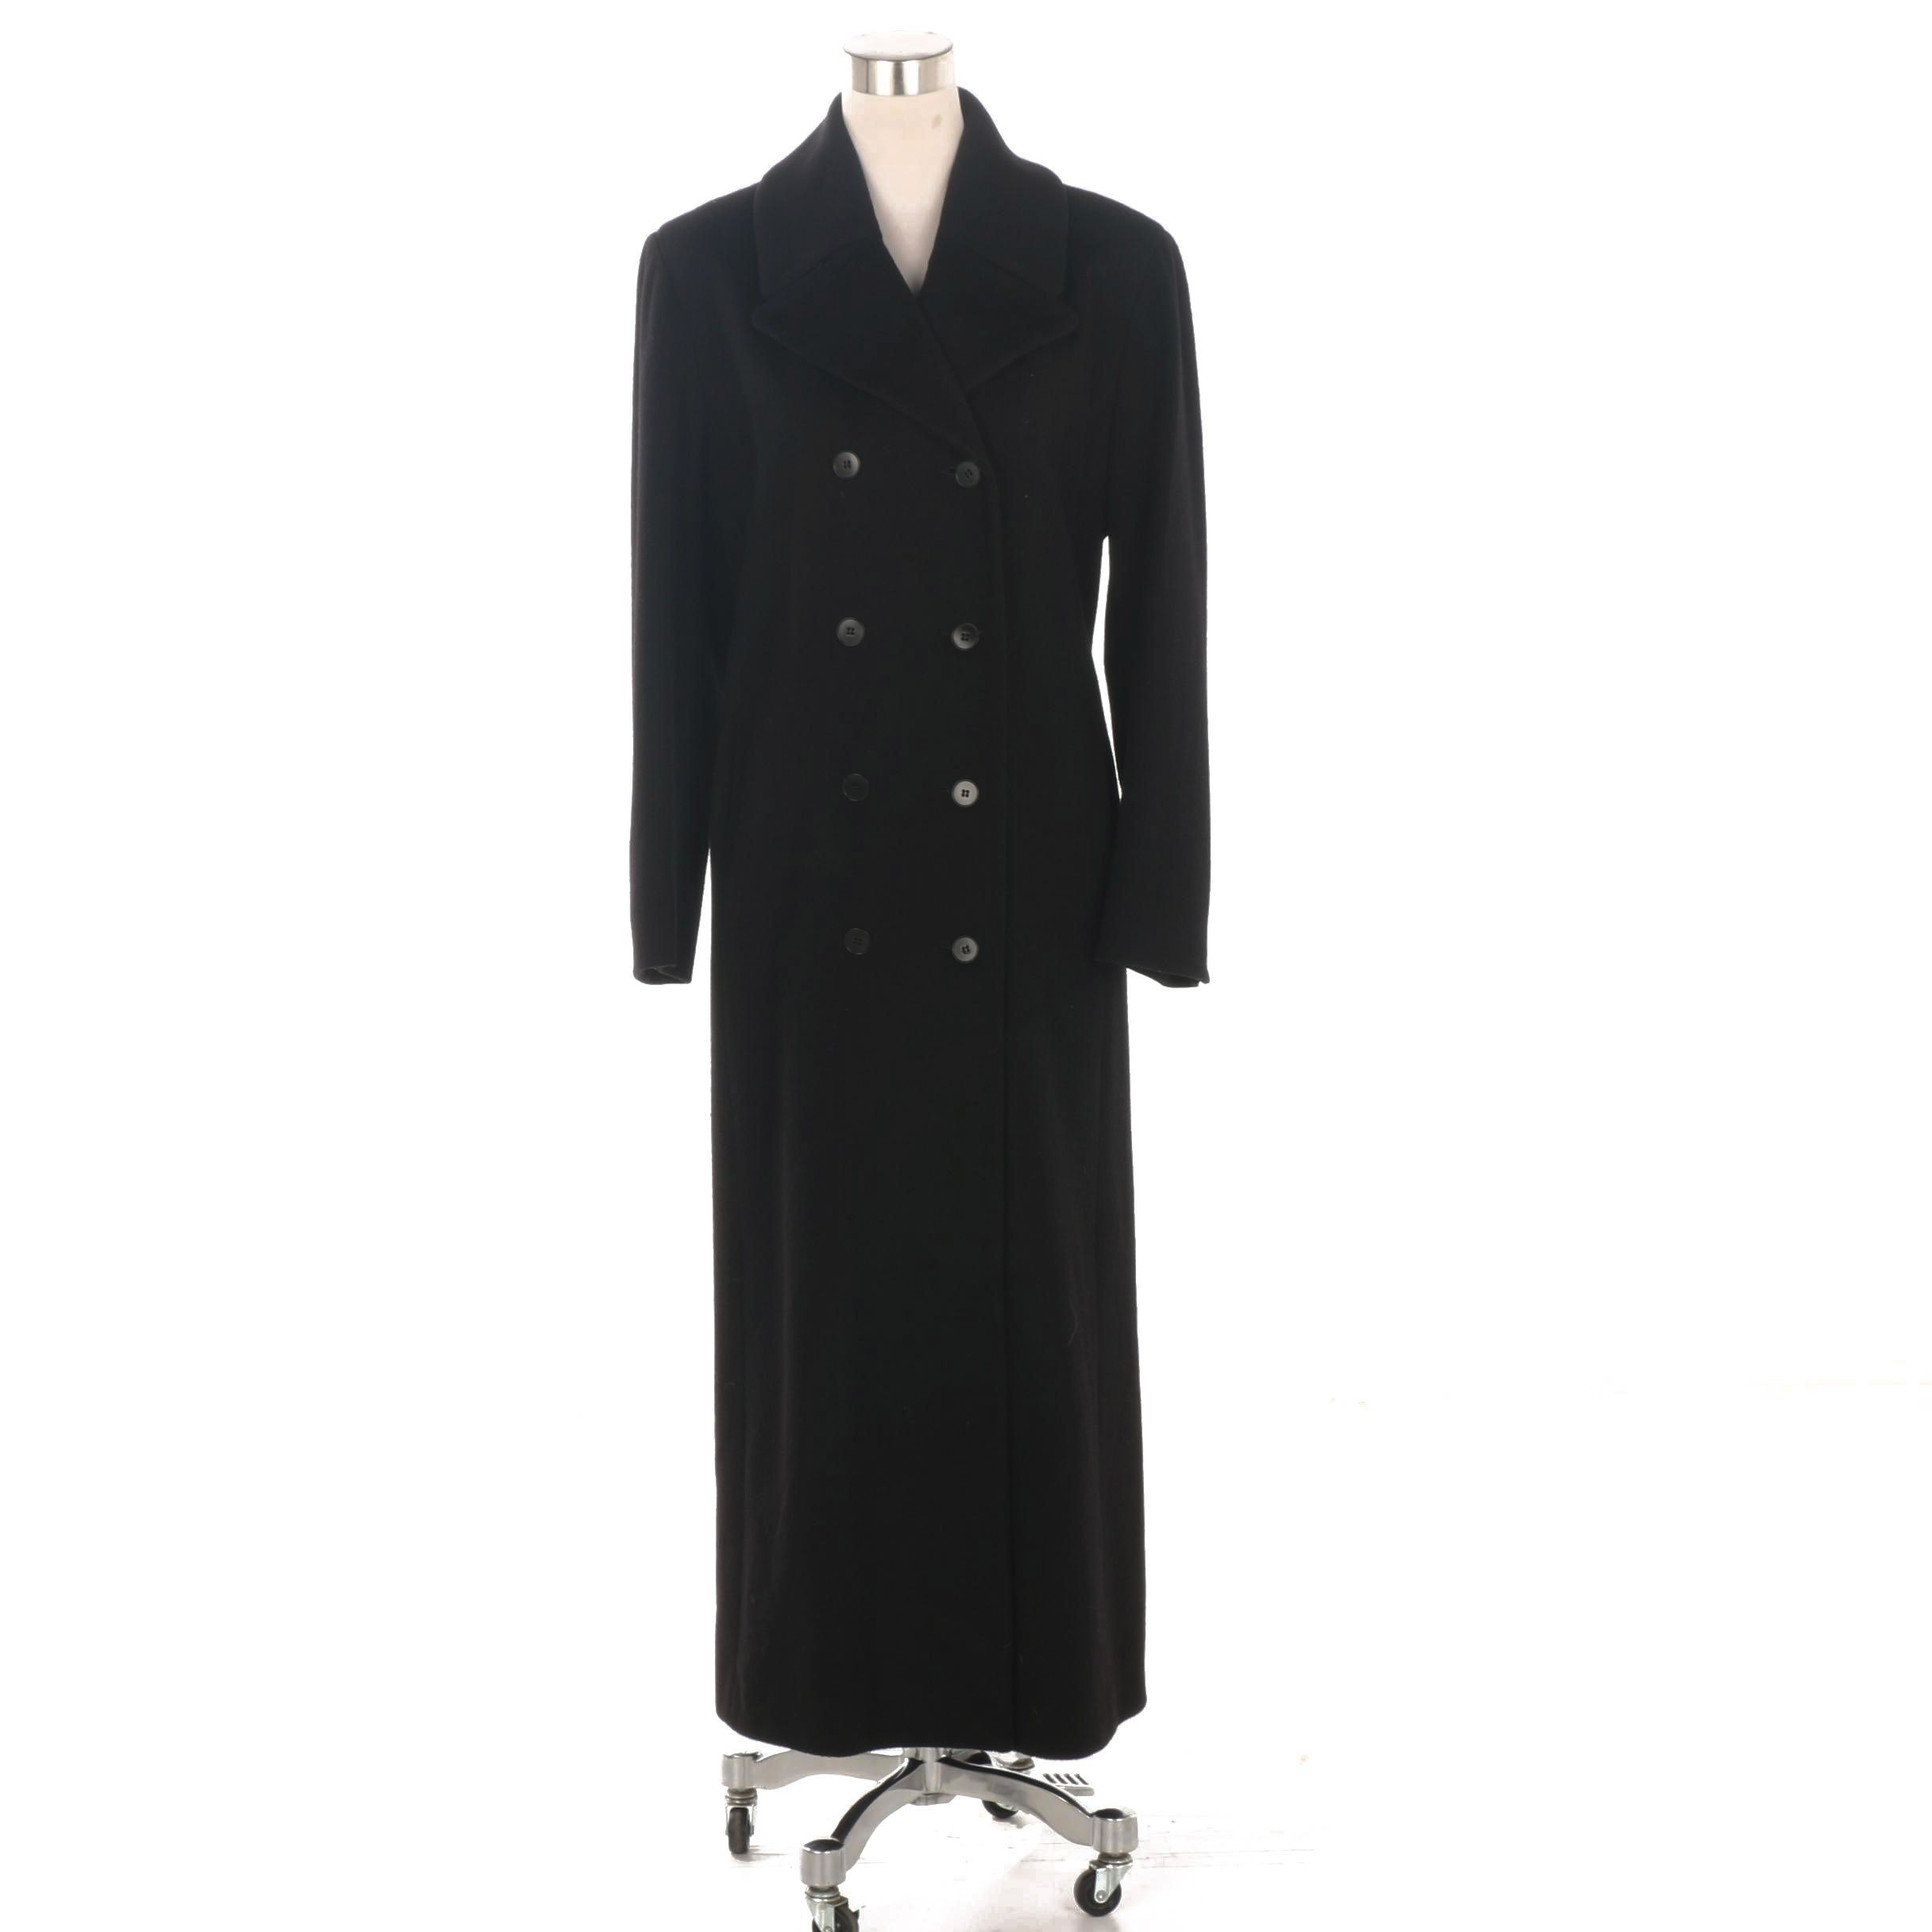 Anne Klein Double-Breasted Black Wool Coat